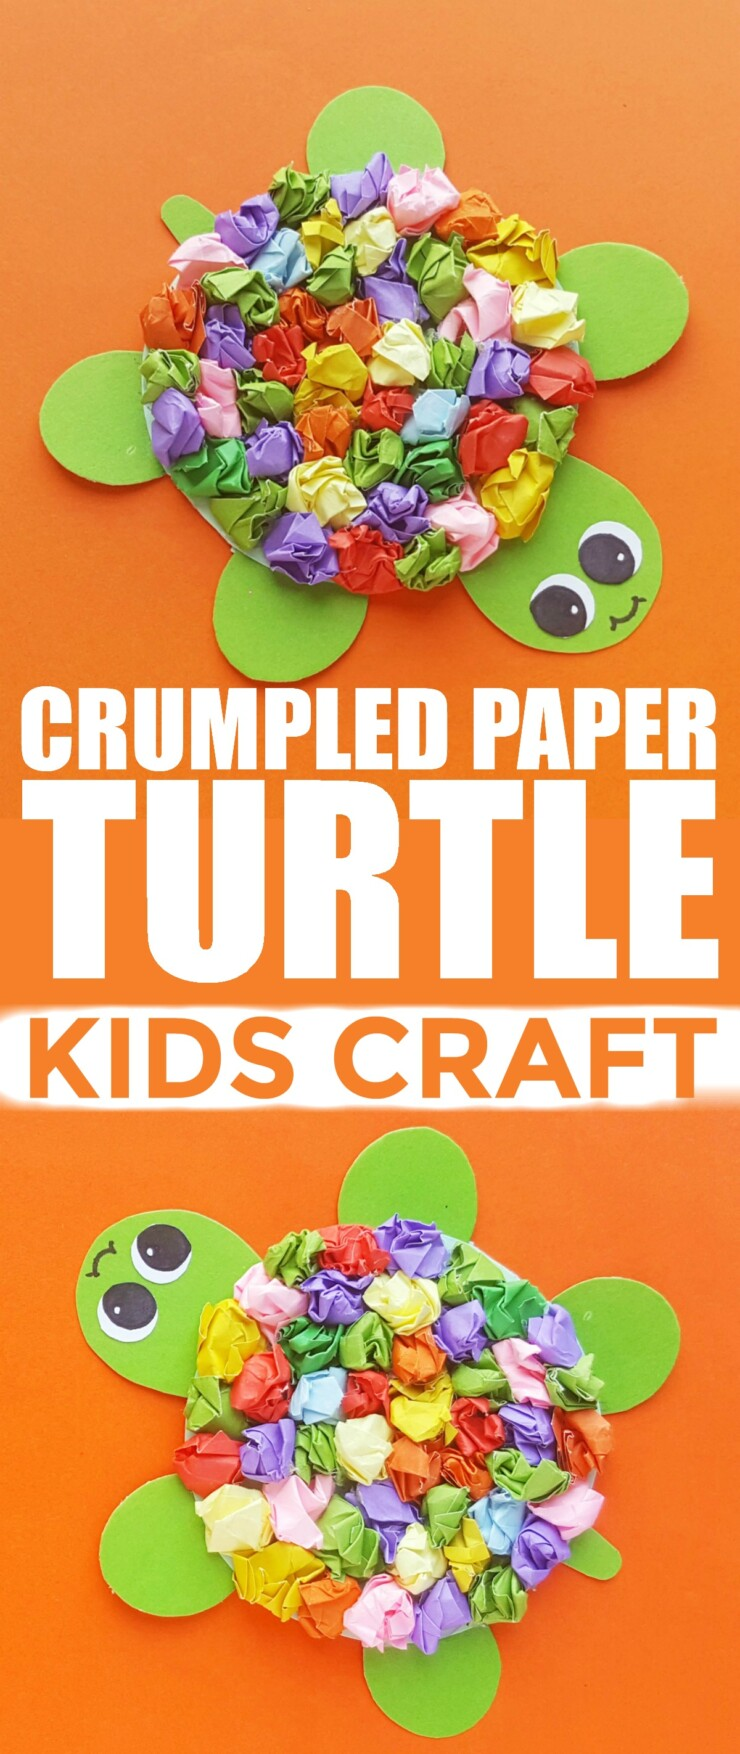 Slow down and make this adorable Crumpled Paper Turtle - it's a Kids Craft all ages can enjoy!